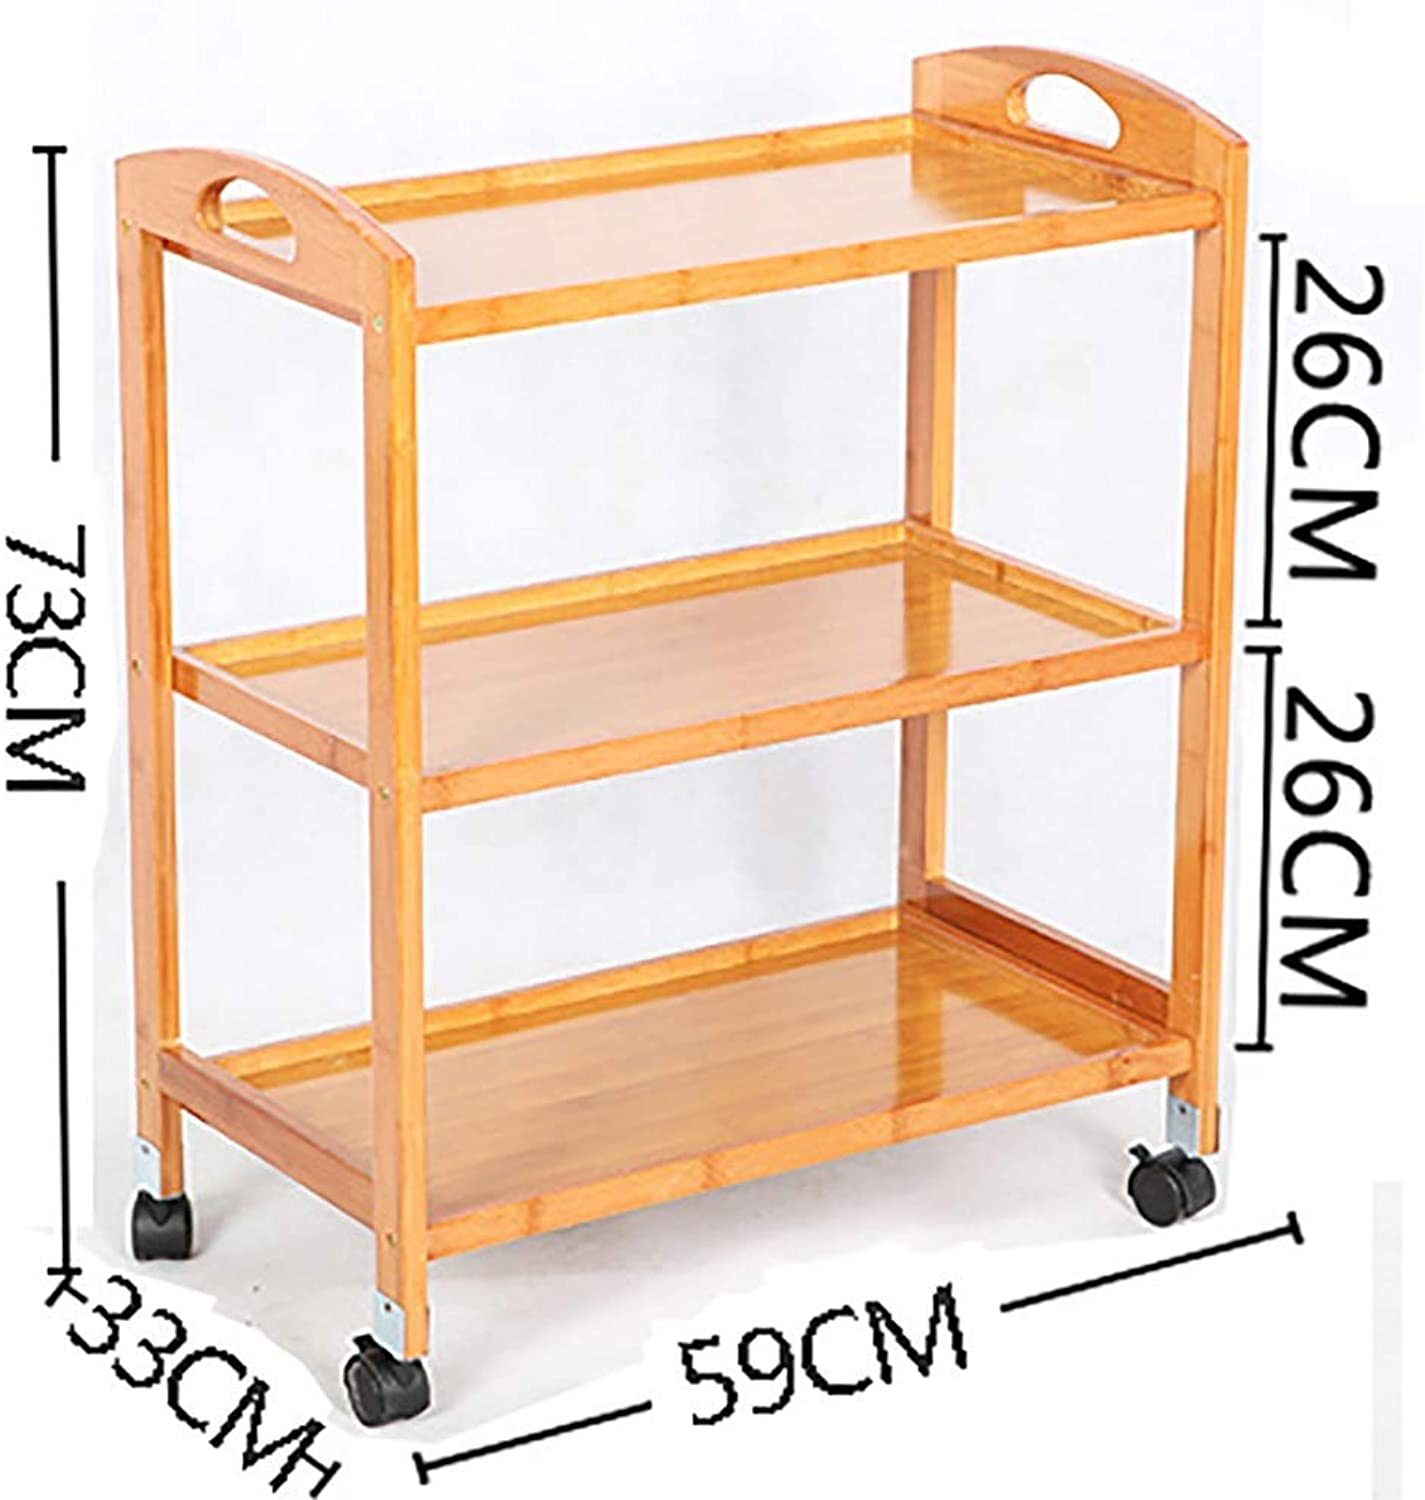 PLLP Hospital Trolley, Medical Supplies Rack-Medical Cart Tool 3 Tier Hotel Catering Cart with Brake Wheel, Beauty Salon Gallery Rolling Trolley, Wooden Medical Equipment Tool Storage Cart,Wood color